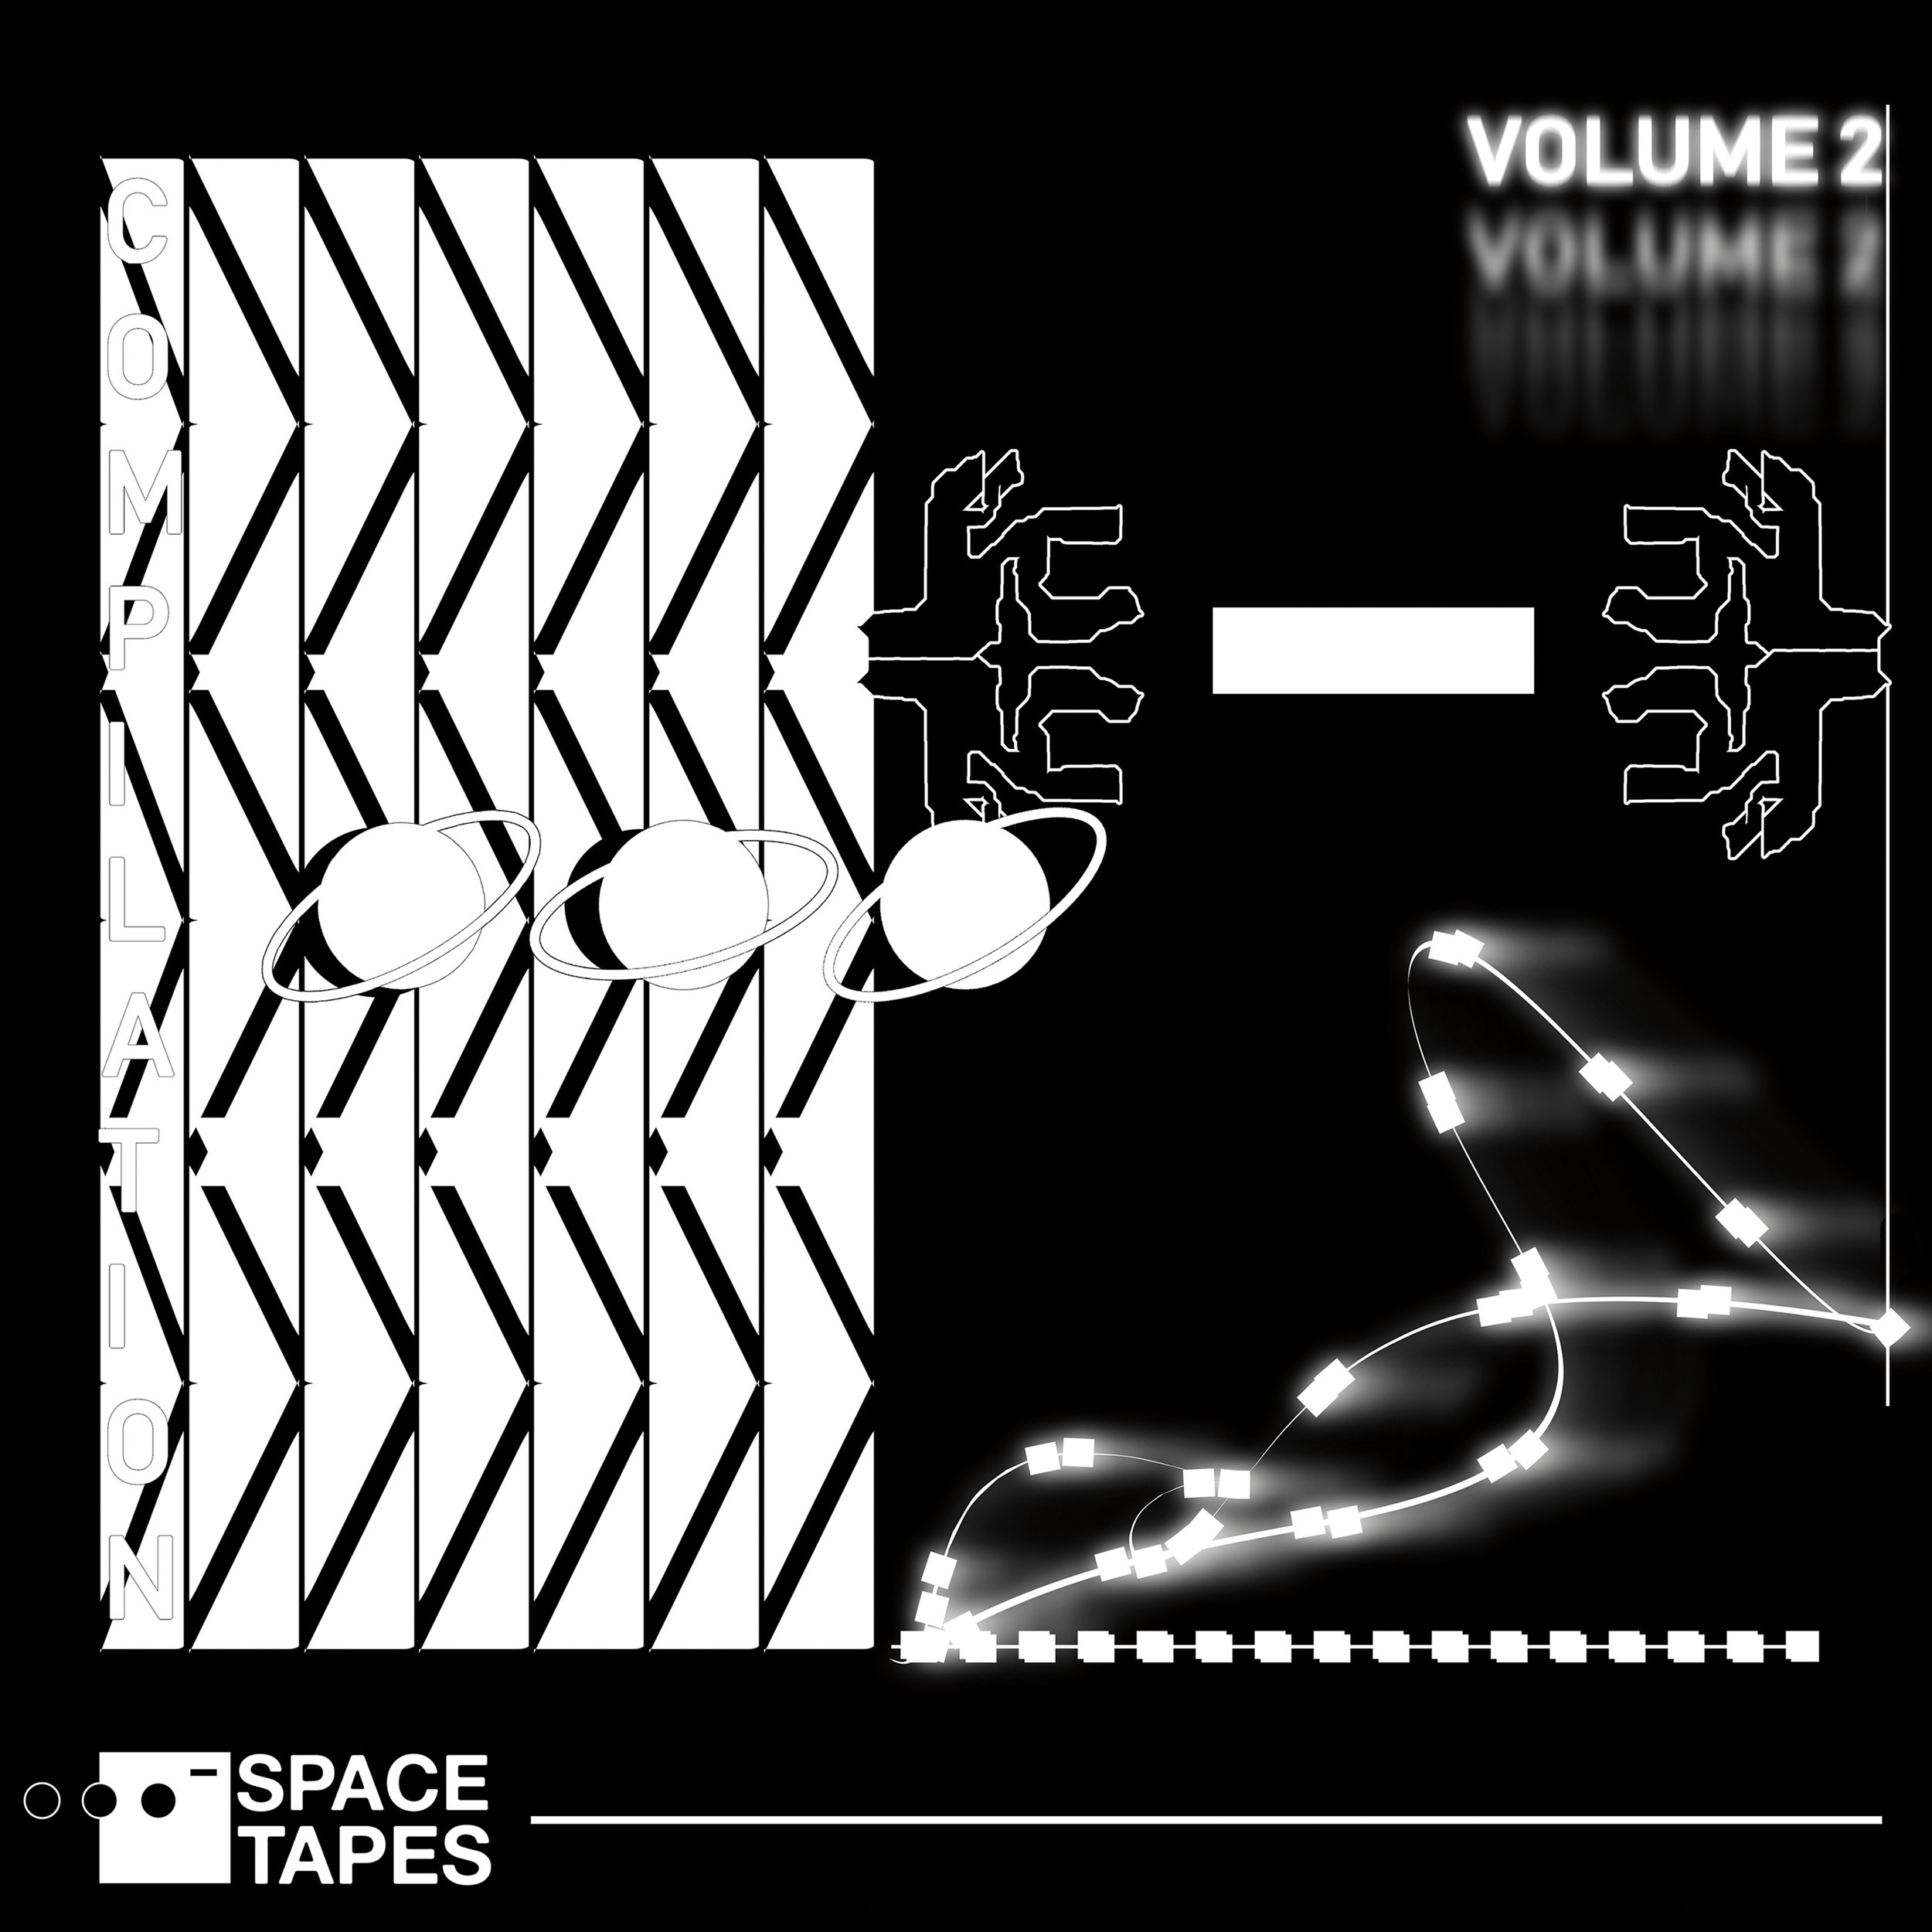 SPACE TAPES COMPILATION / VOL. 2  ST009